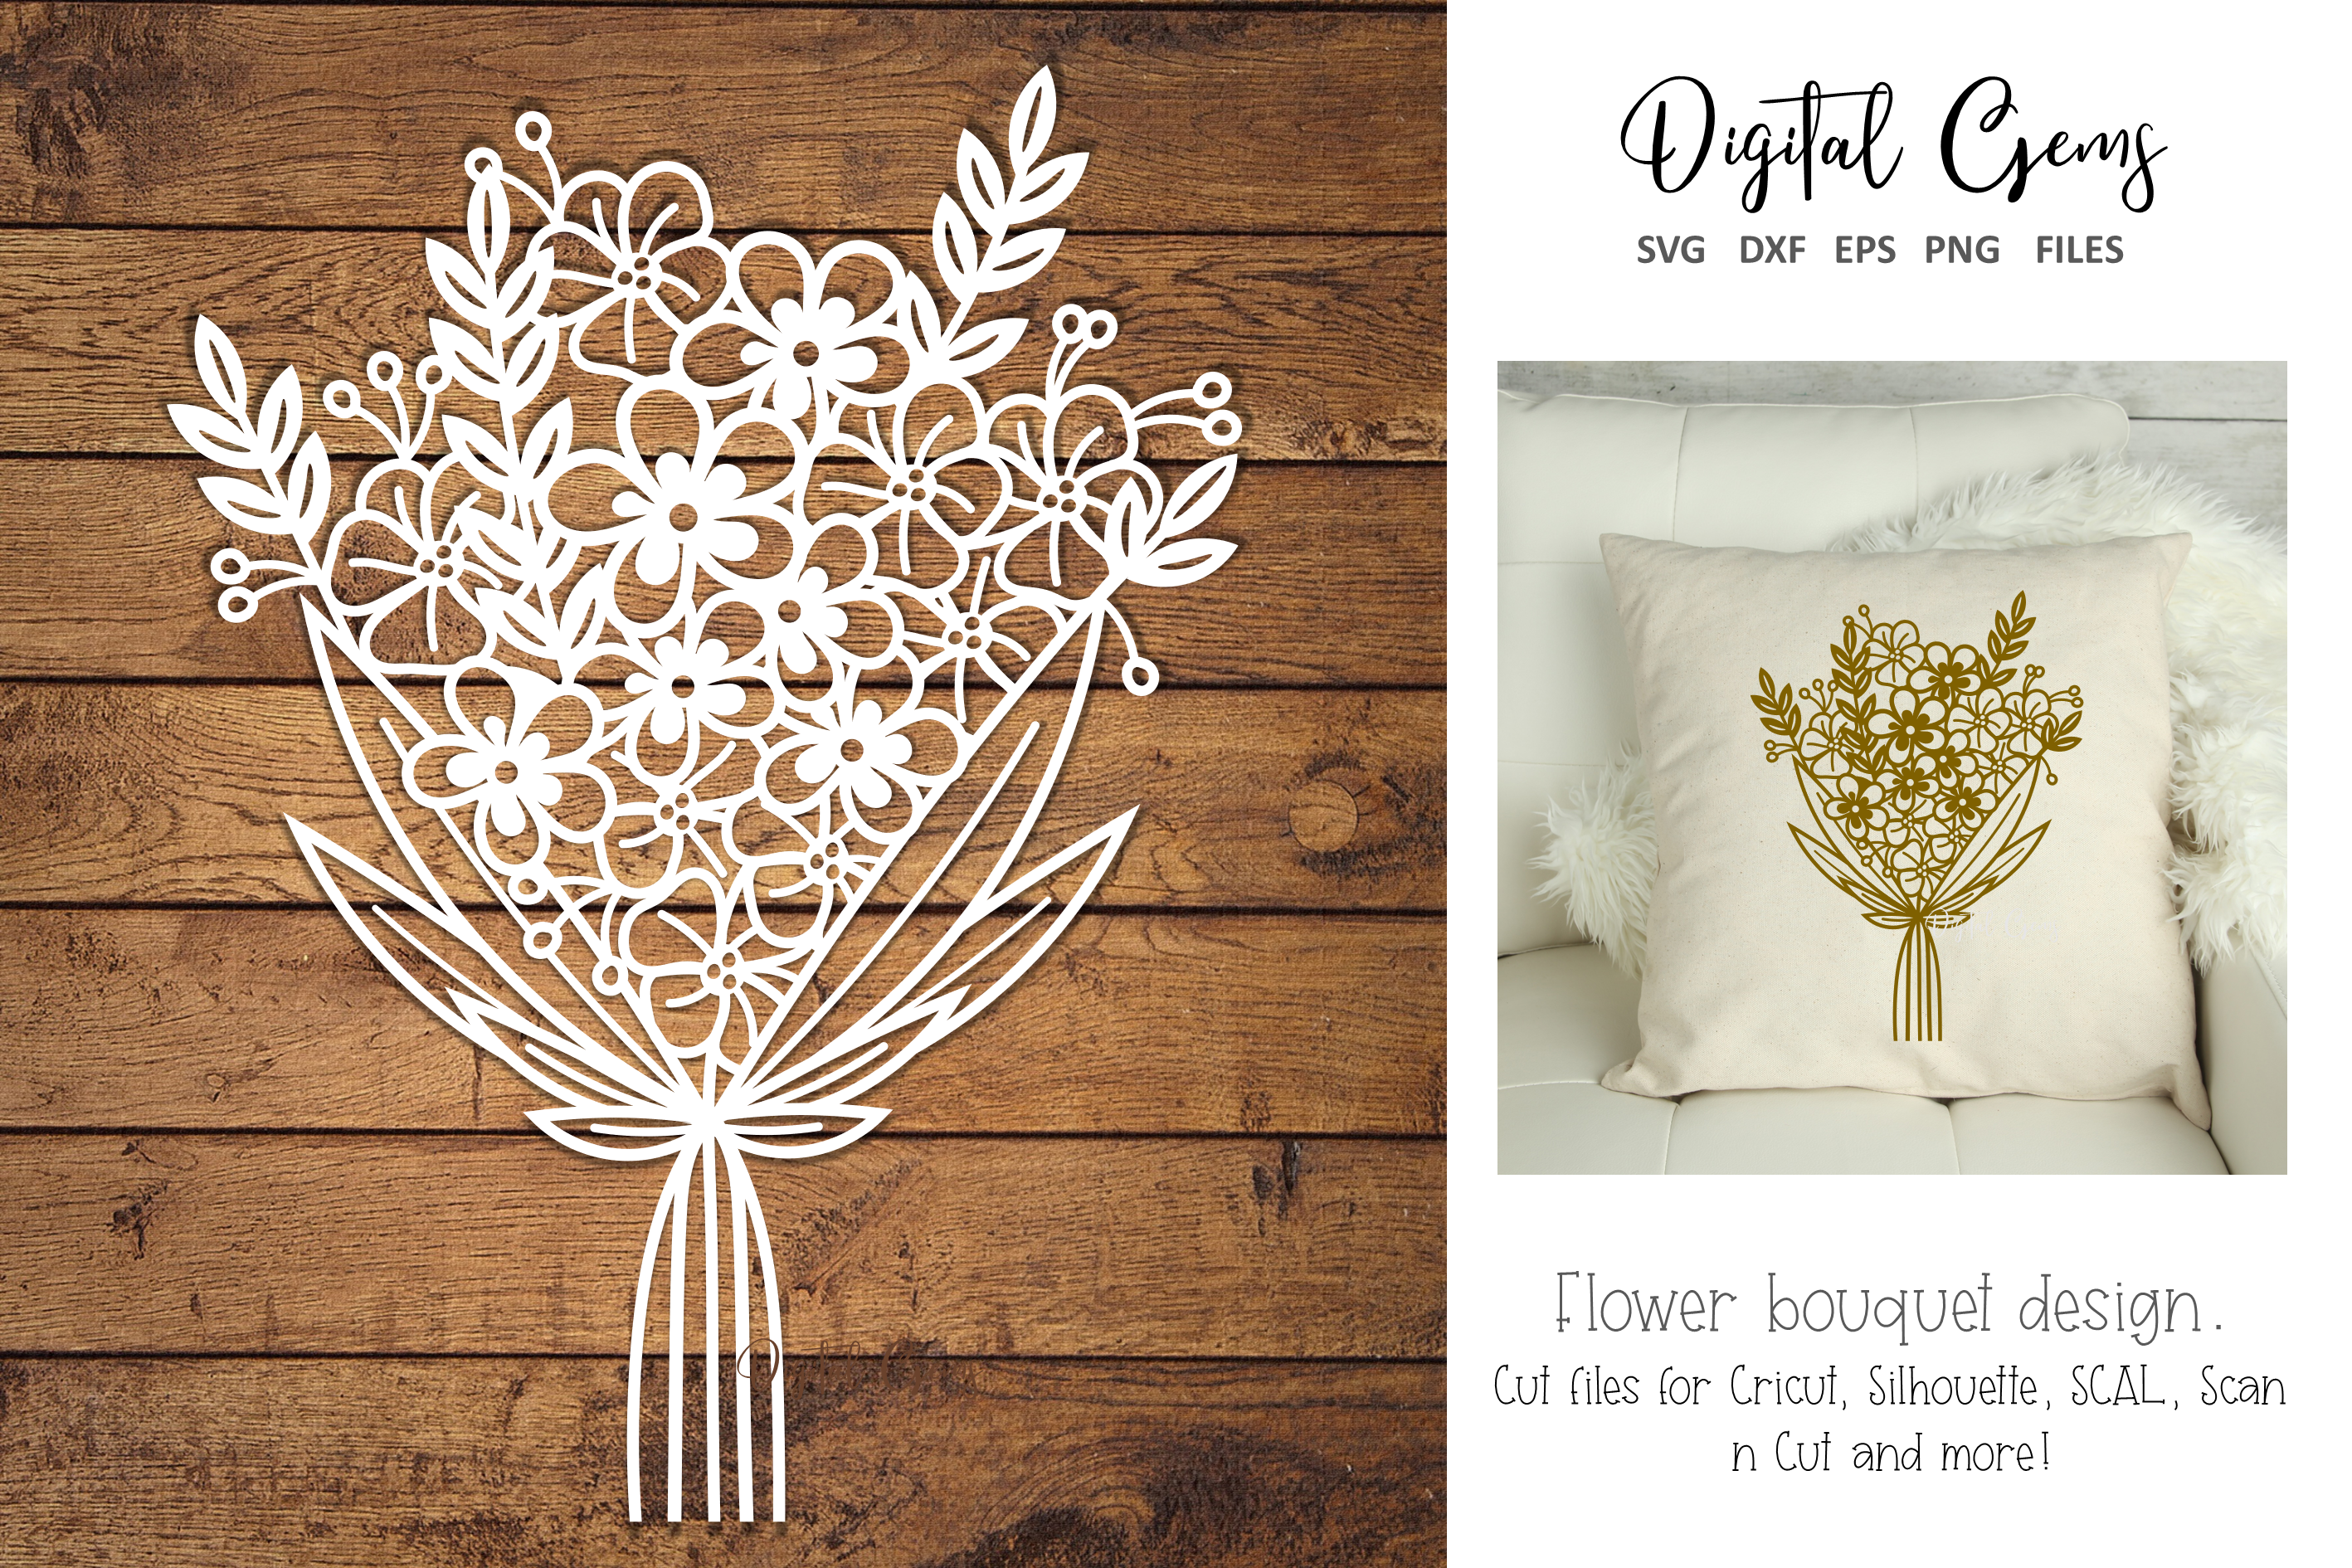 Download Free Flower Paper Cut Design Graphic By Digital Gems Creative Fabrica for Cricut Explore, Silhouette and other cutting machines.